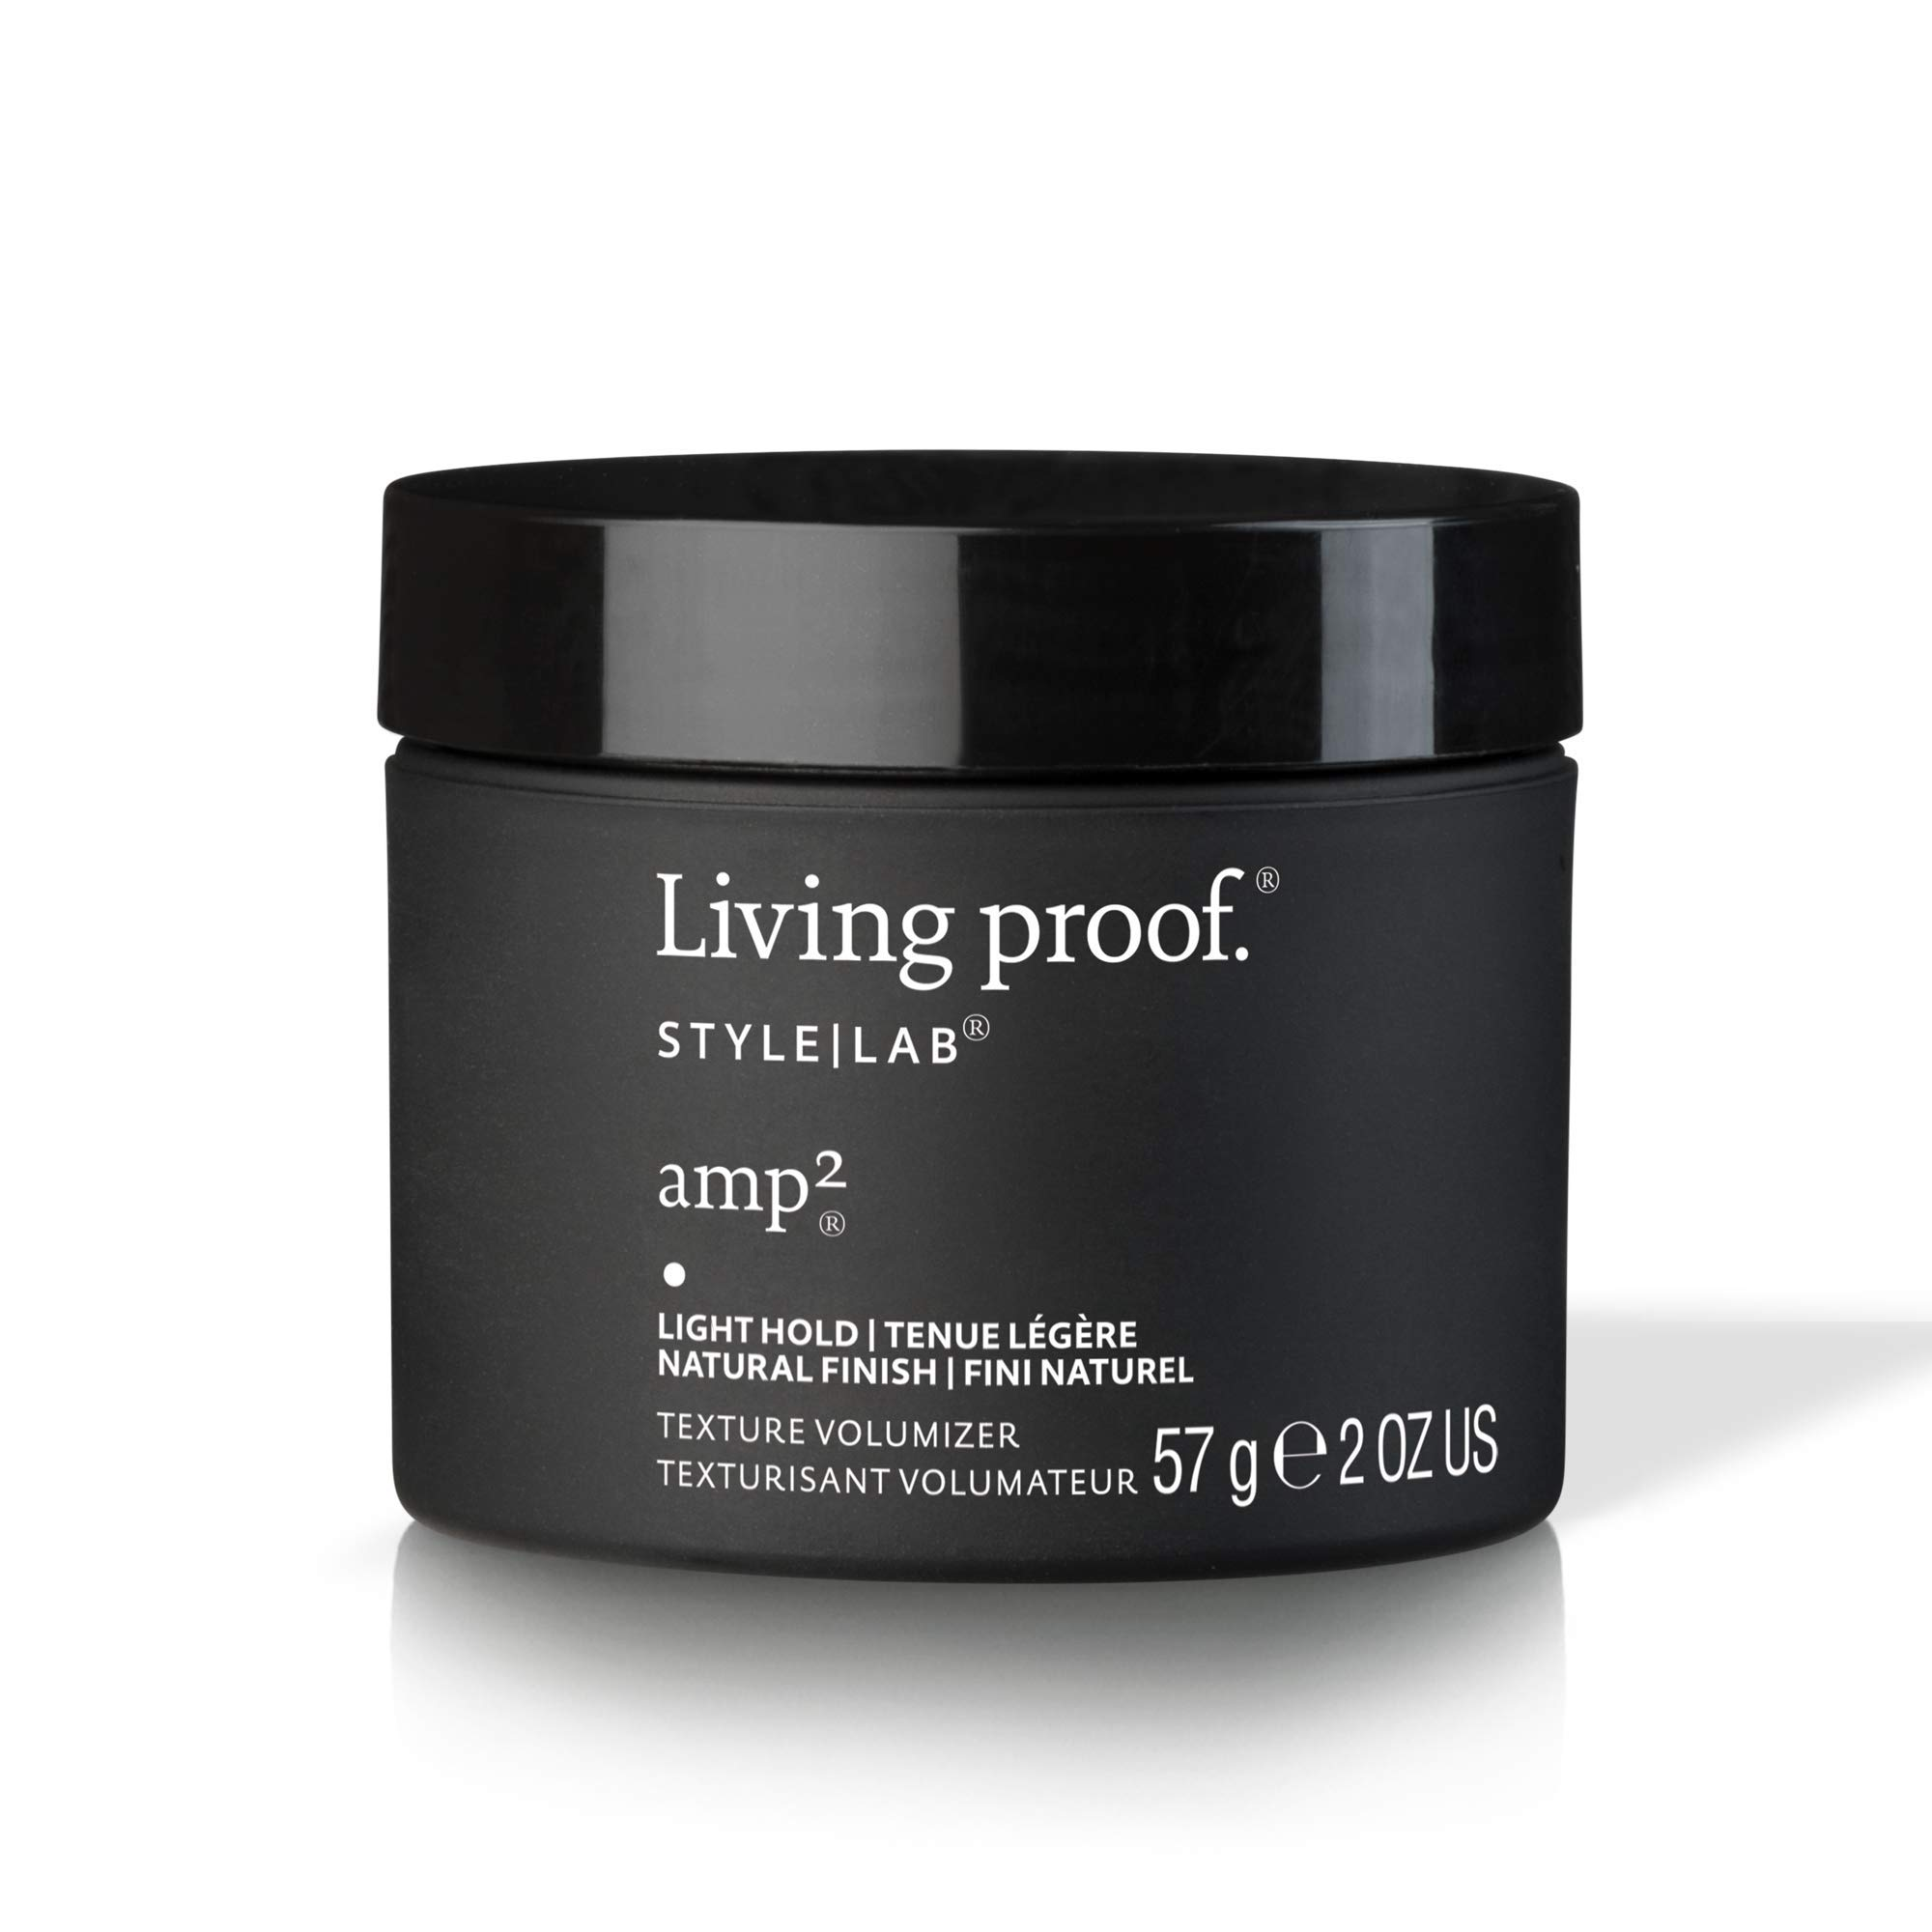 Living Proof Amp Texture Volumizer, 2 oz by Living proof